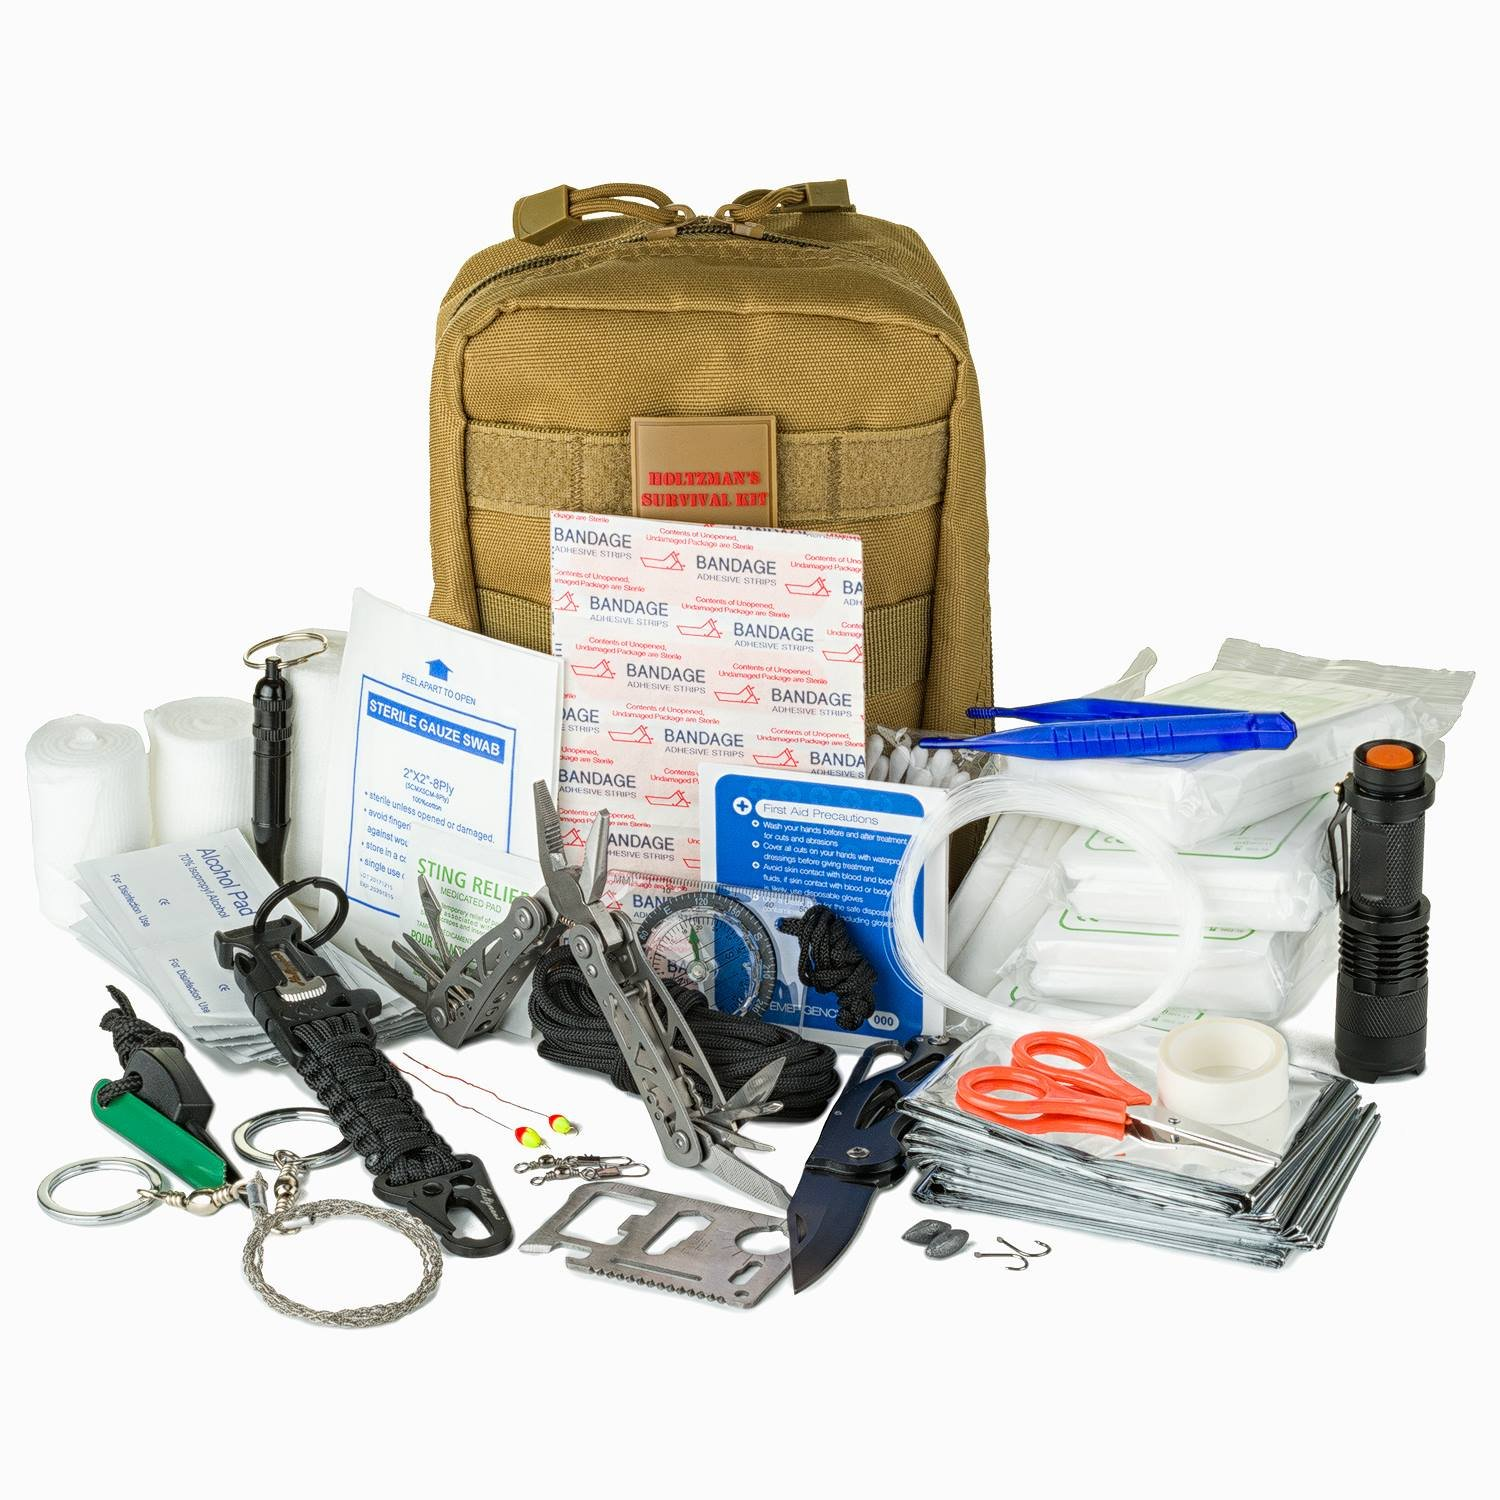 Emergency Survival Kit   Ultimate 98-in-1 Outdoor Multi-Tools for Camping, Hiking, Hunting & Fishing   First Aid Supplies   All Inclusive Survival Gear with Molle for Campers & Preppers